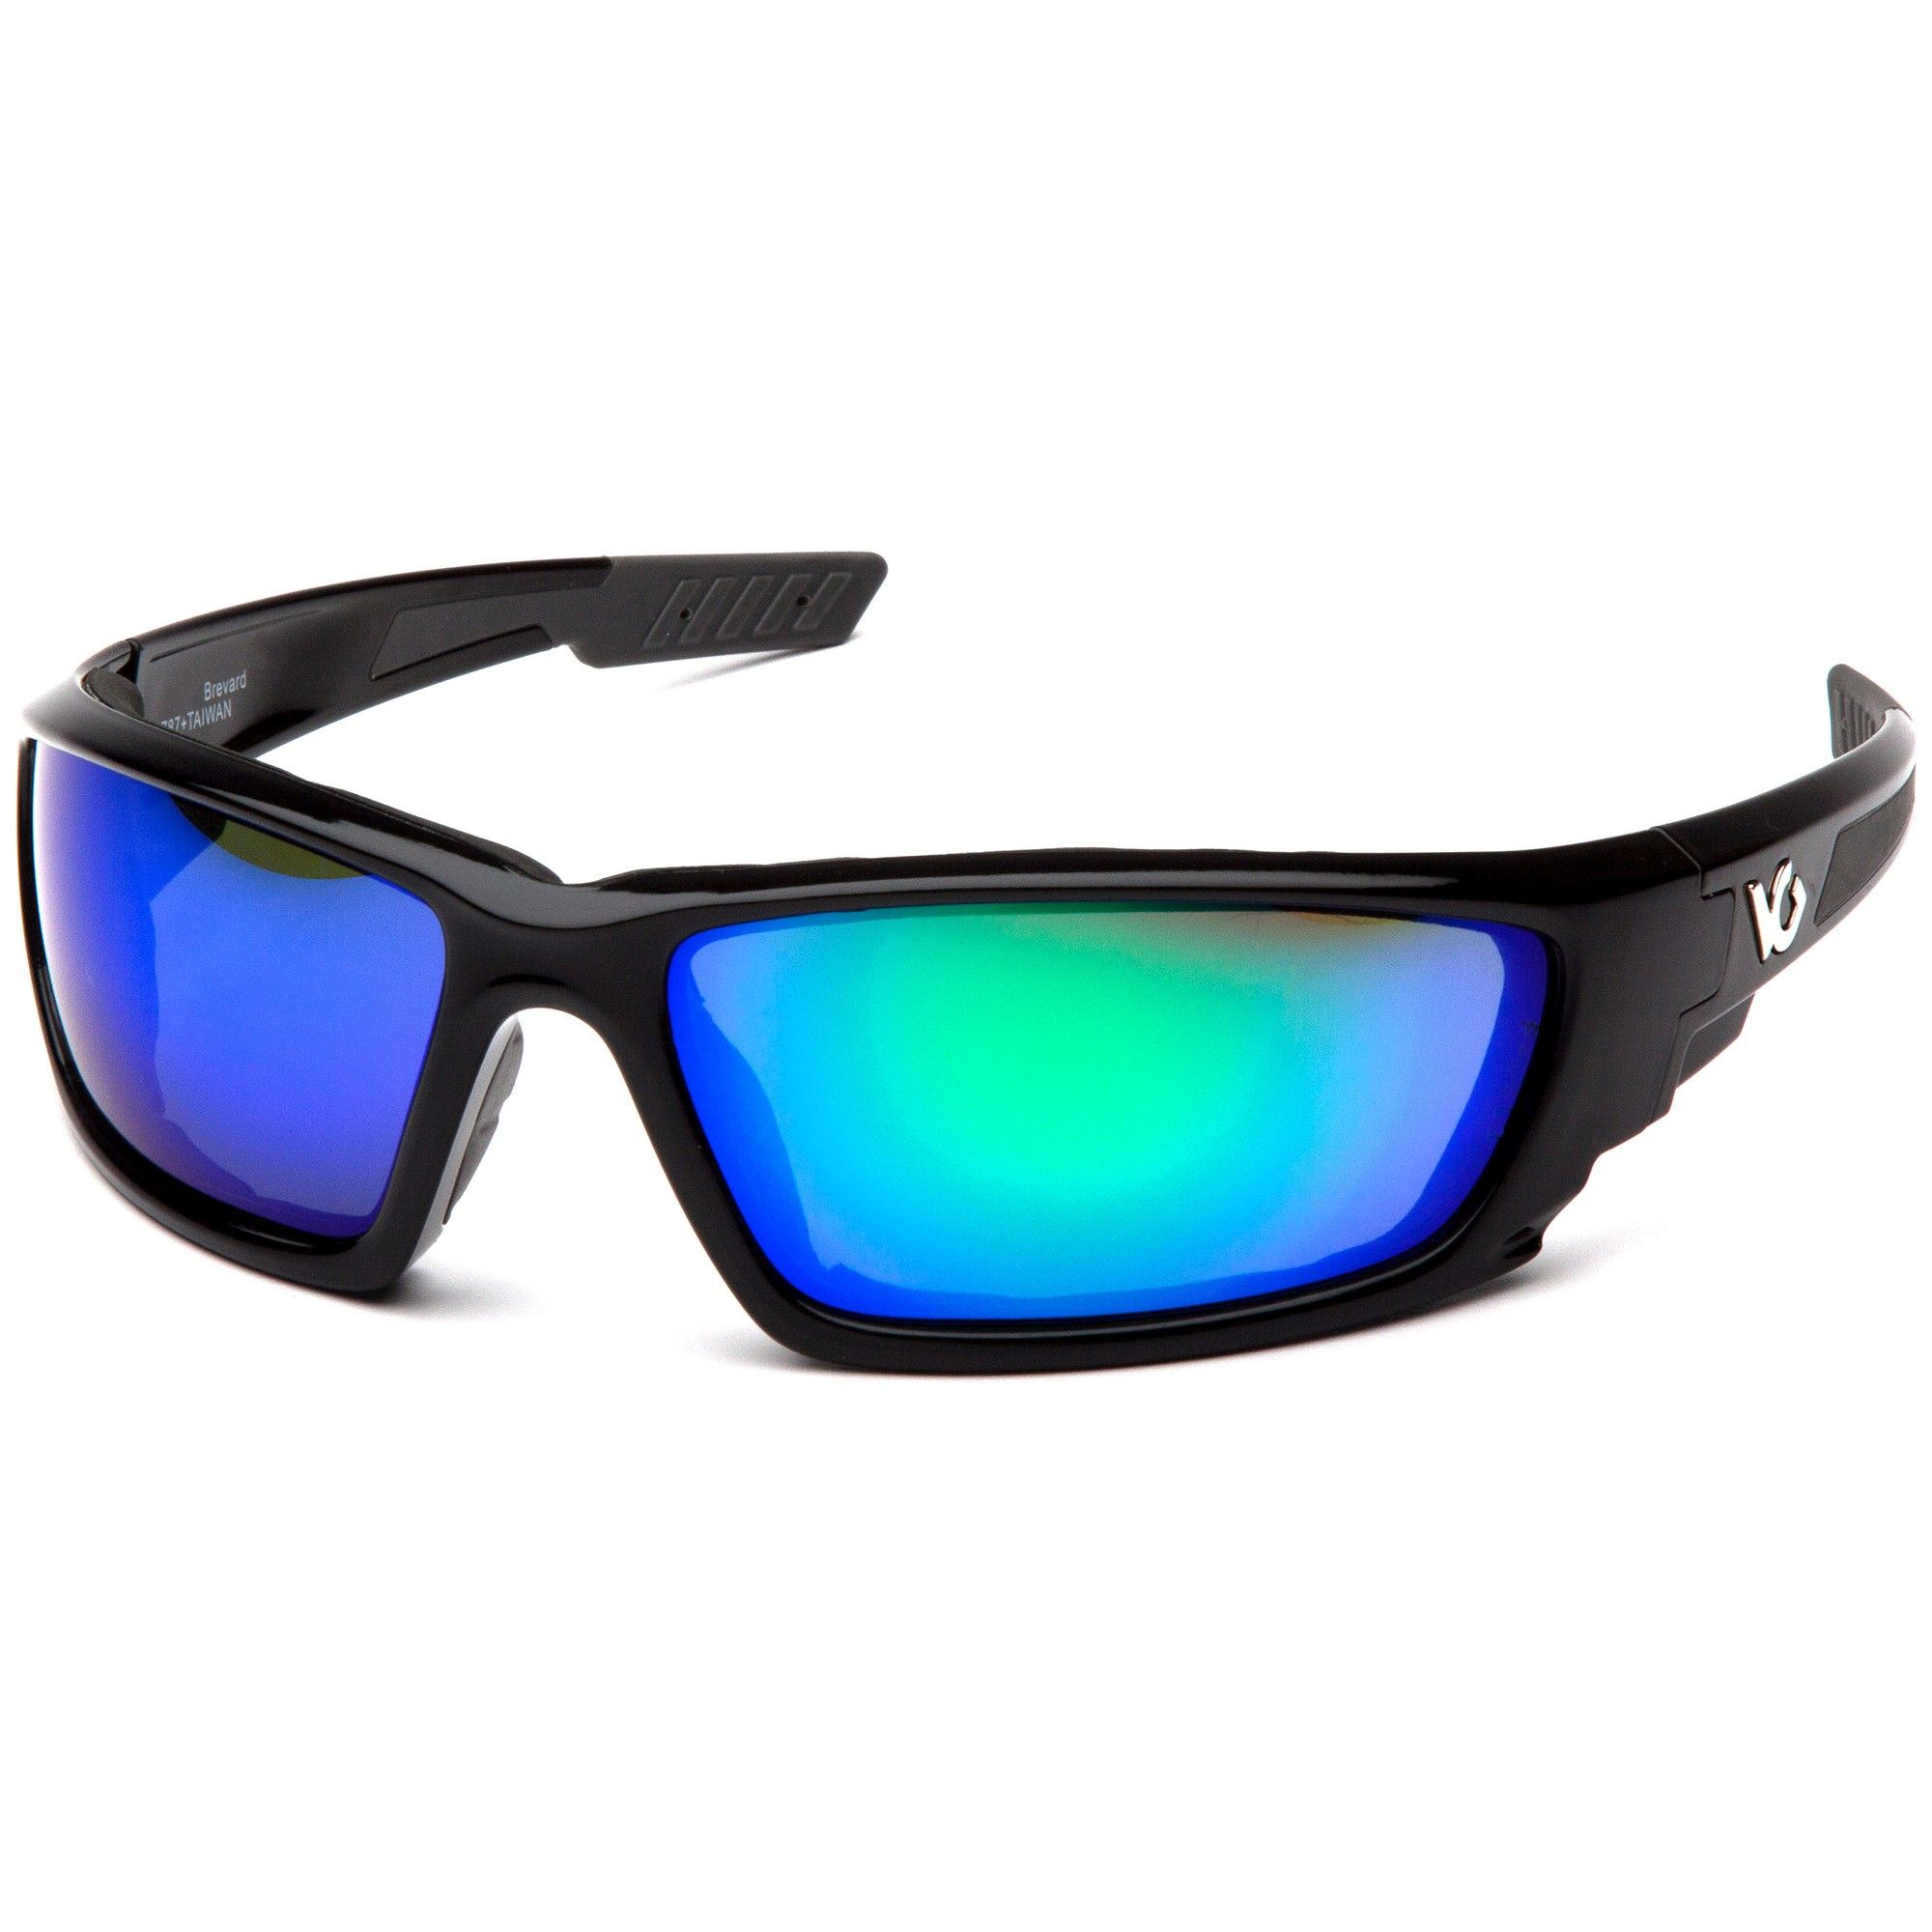 2442bf519b09 Venture Gear Brevard Eyewear - Black Foam Lined Frame - Green Mirror  Anti-Fog Lens